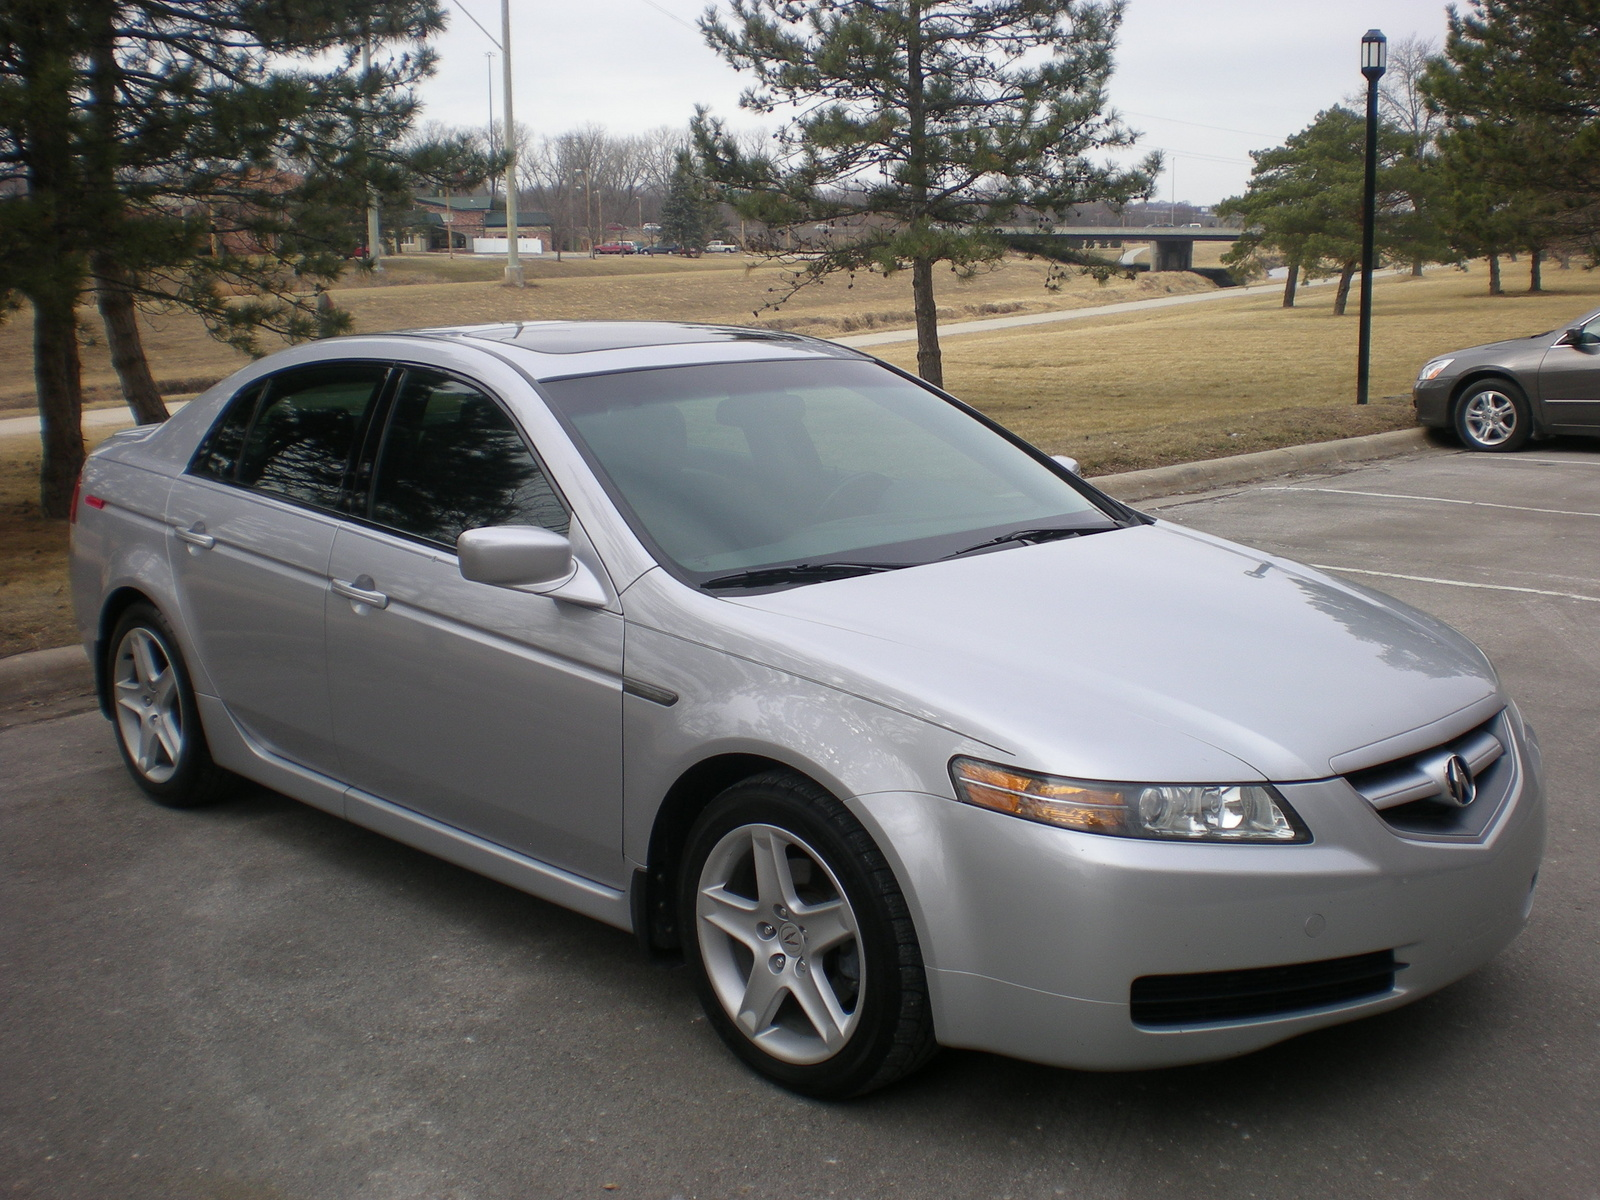 1998 Honda Accord Reviews >> 2004 Acura TL - Exterior Pictures - CarGurus